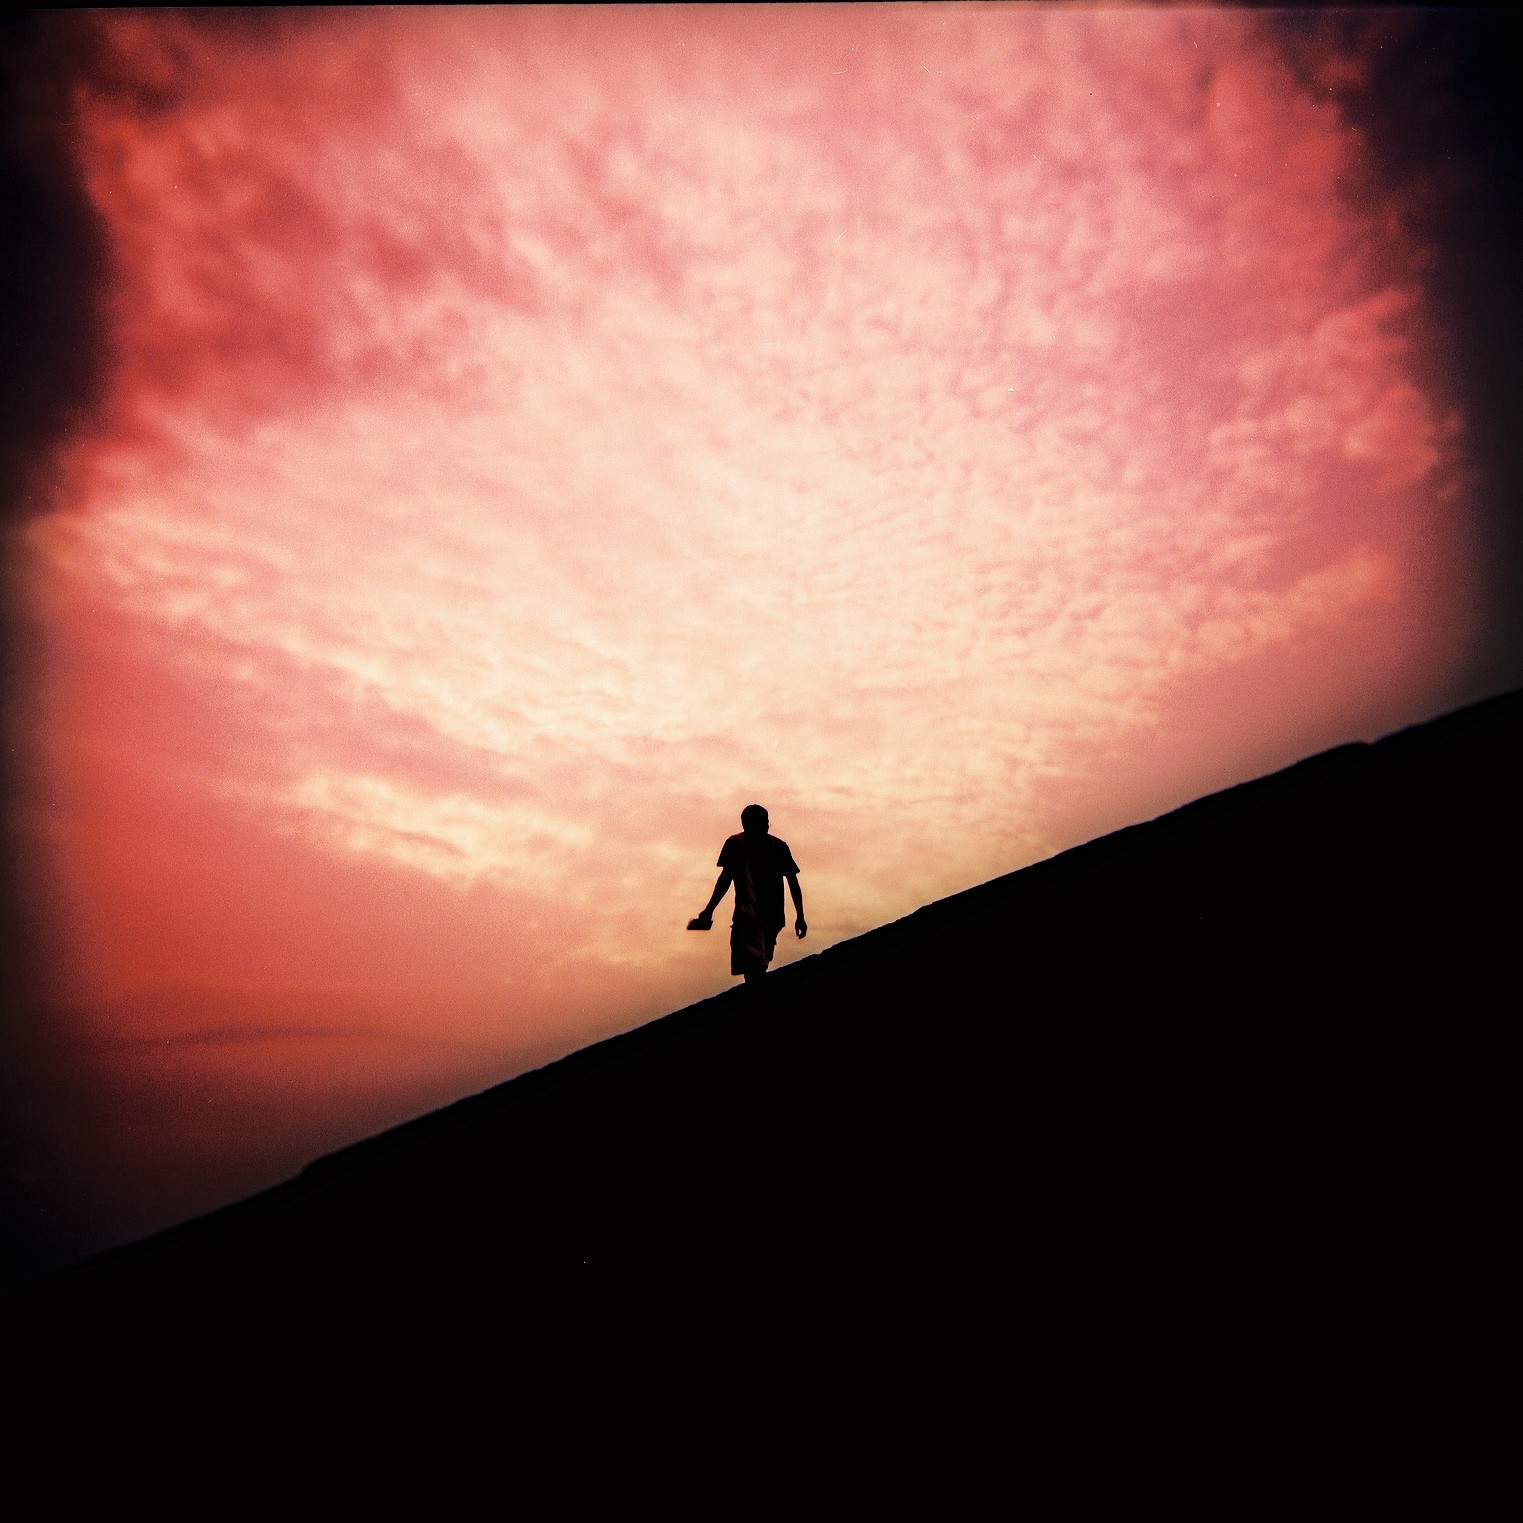 Photo of the dark silhouette of a person walking in front of a pink sunset.